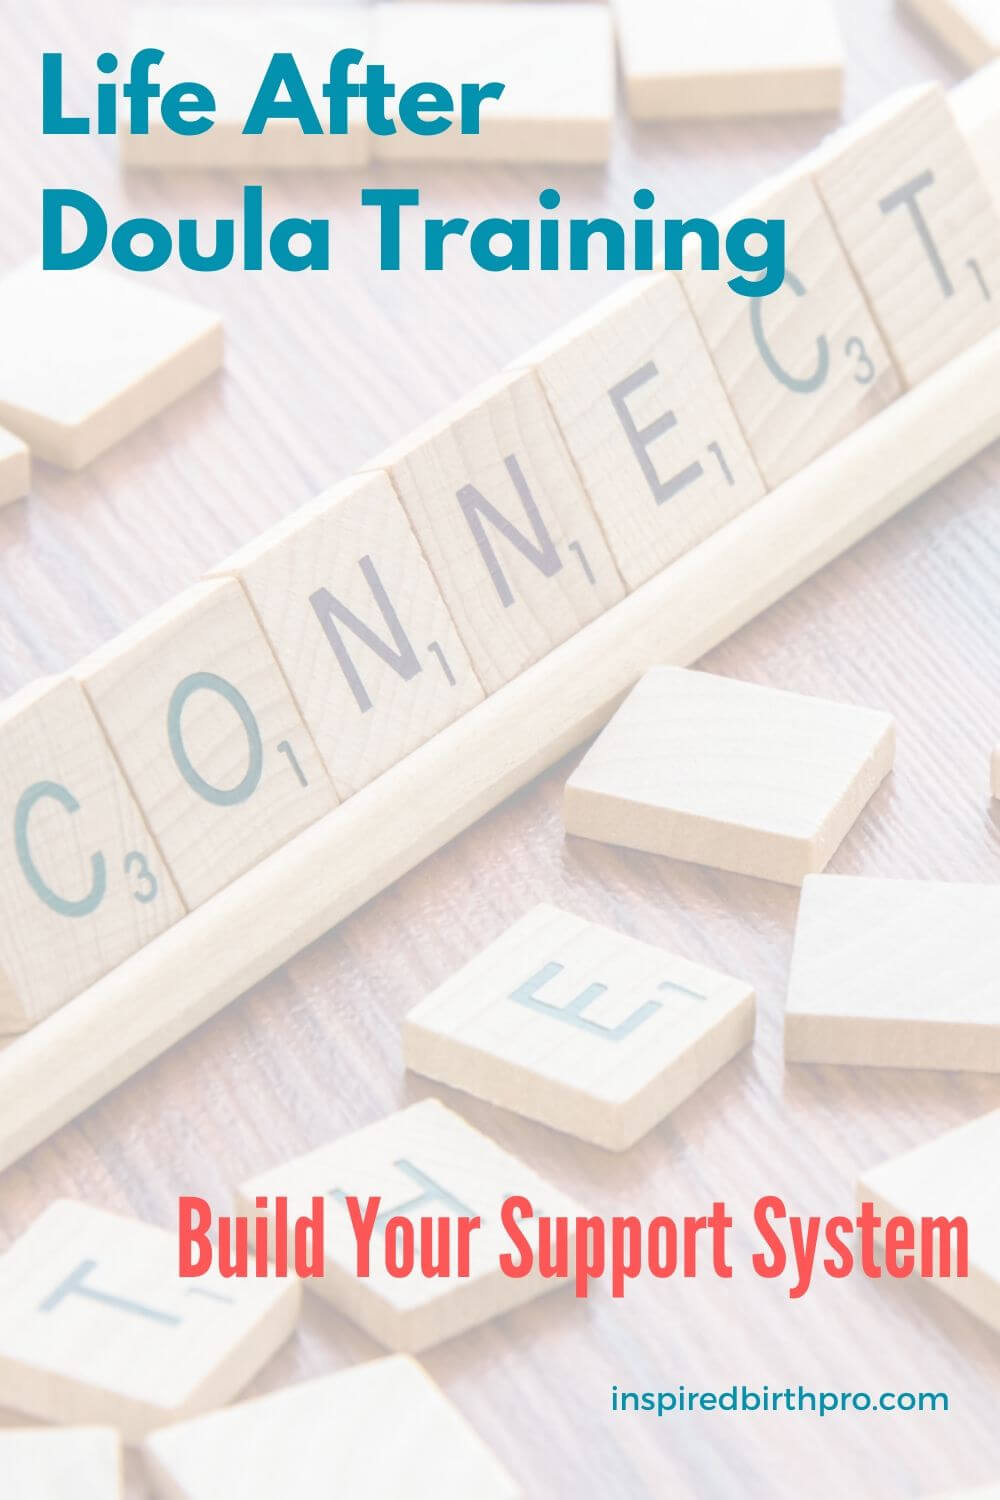 Life After Training - Part 1: Build Your Support System